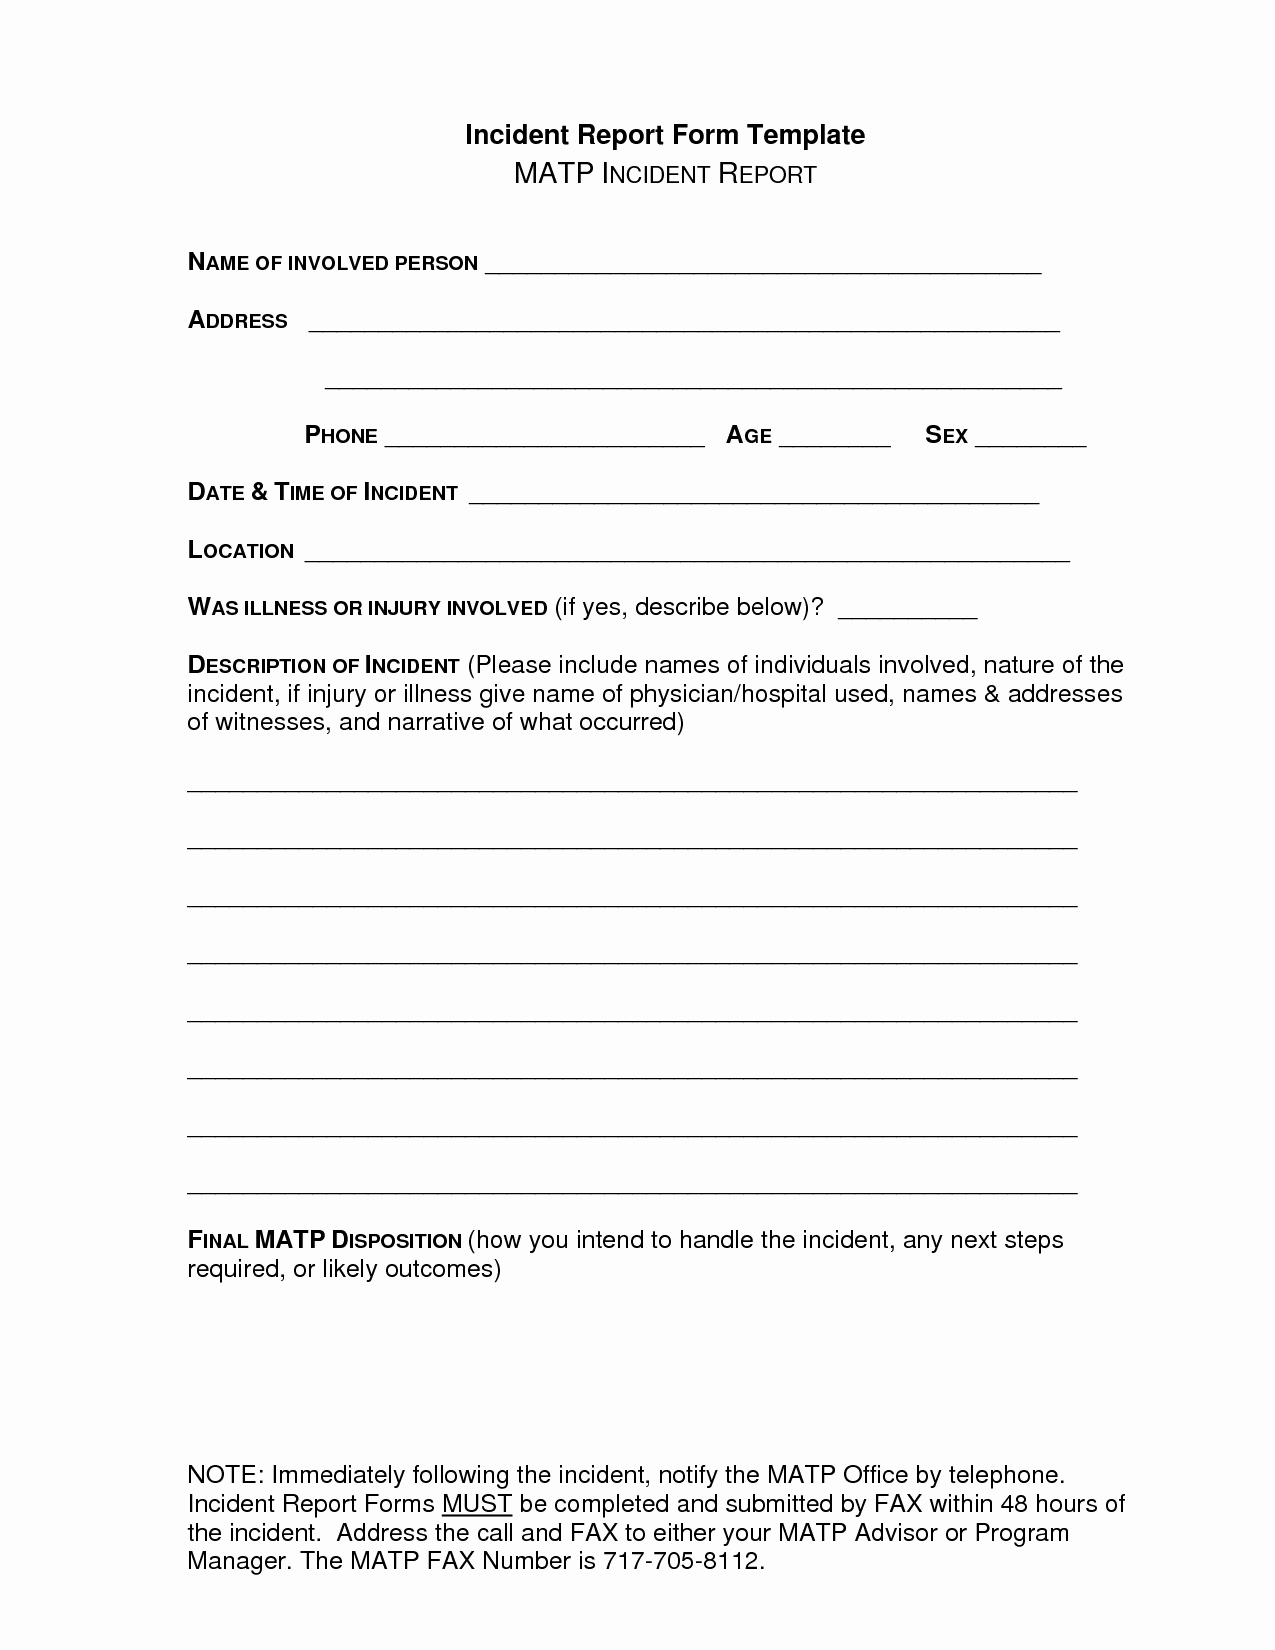 Security Incident Report Template Word Awesome School Incident Report Template Word 2017